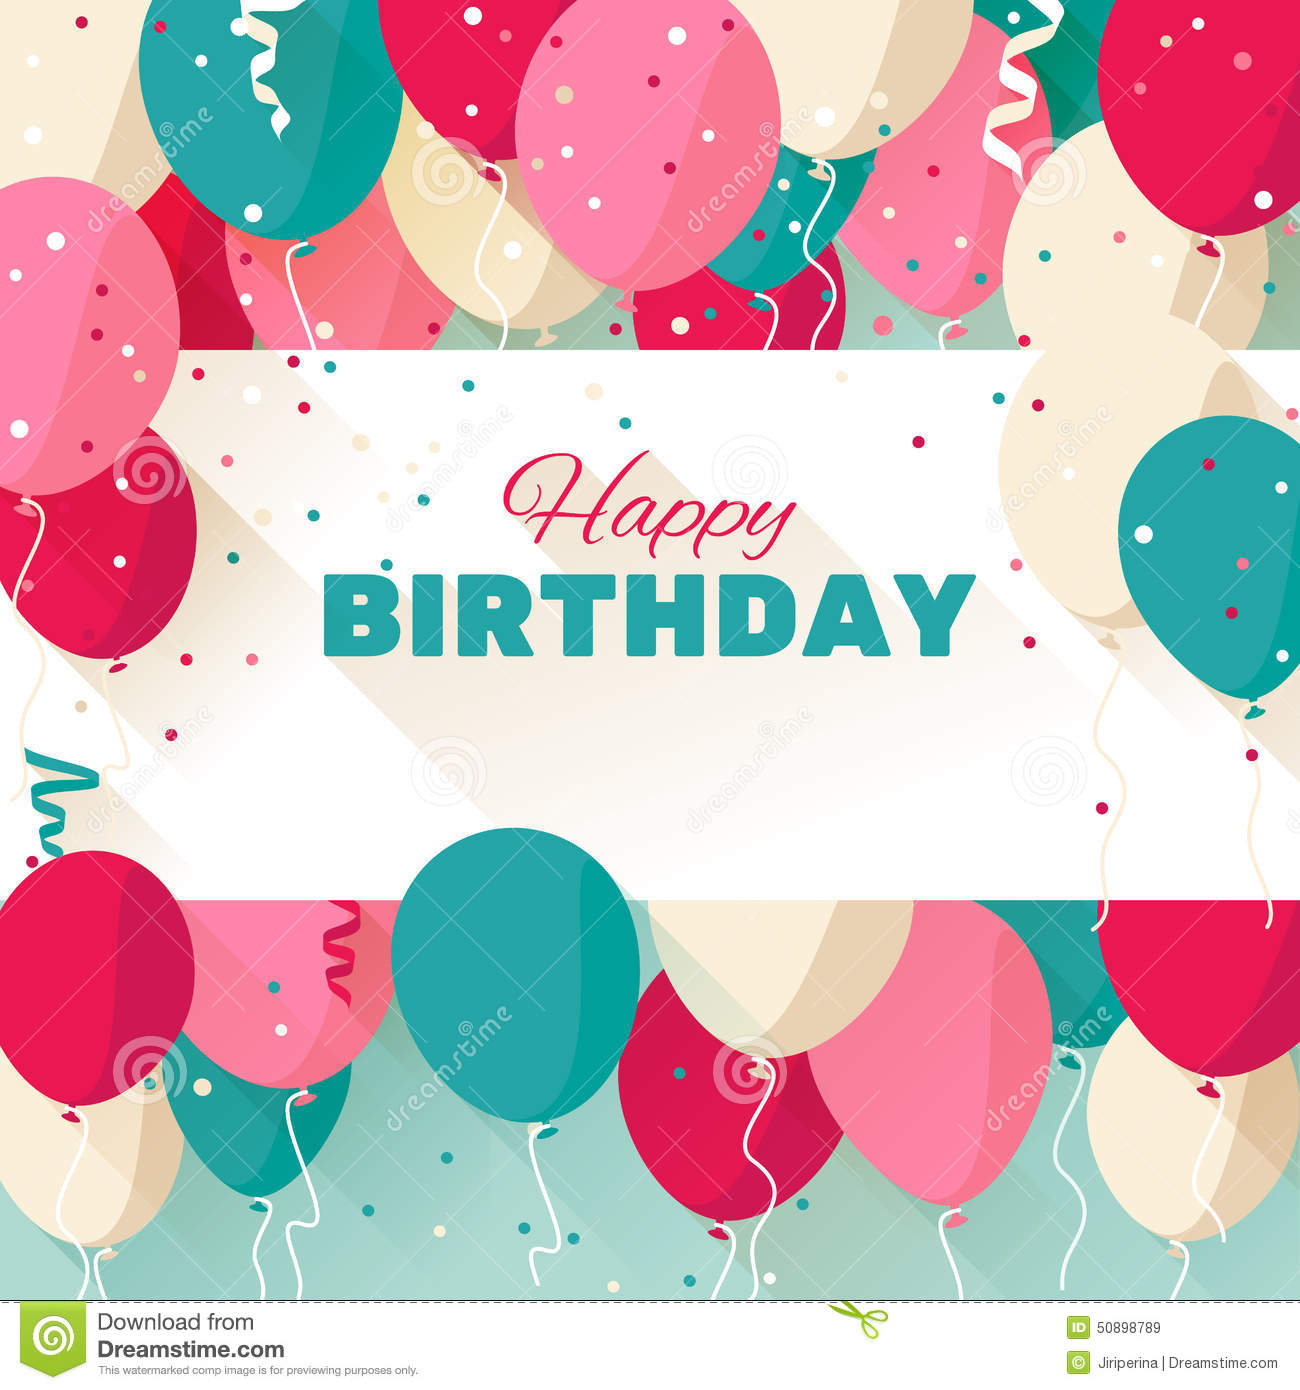 birthday wishes posters free ; happy-birthday-greeting-card-flat-style-announcement-poster-flyer-vector-illustration-50898789